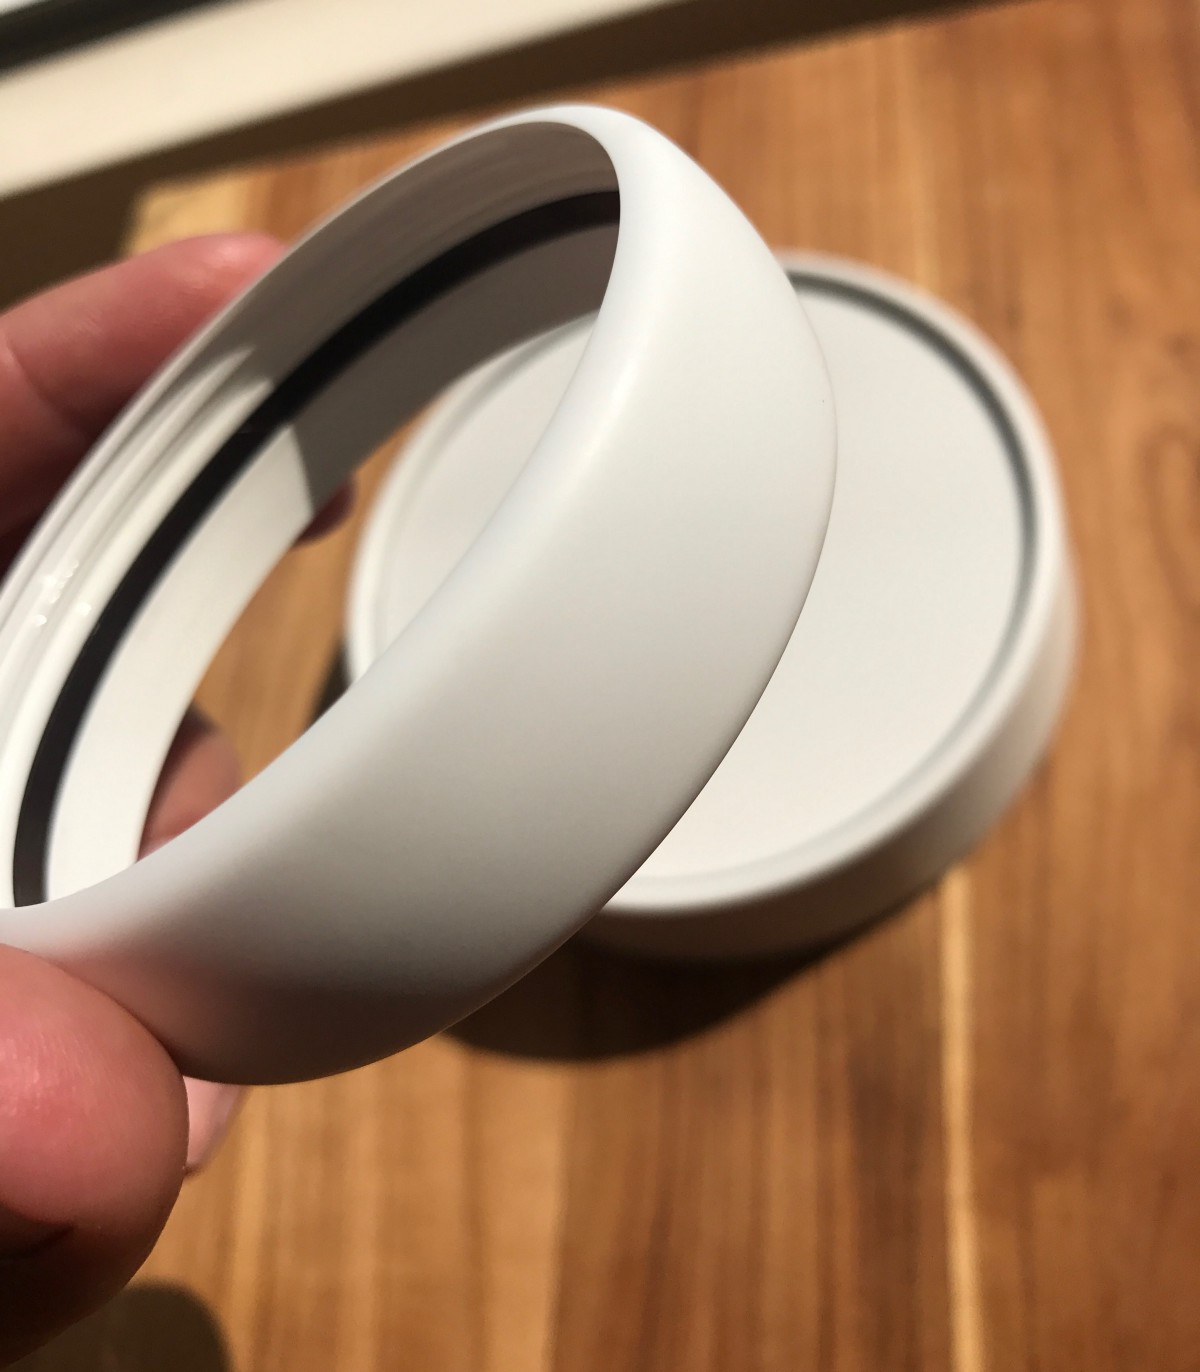 nest thermostat e teardown and on making beautiful devices for the home rh medium com